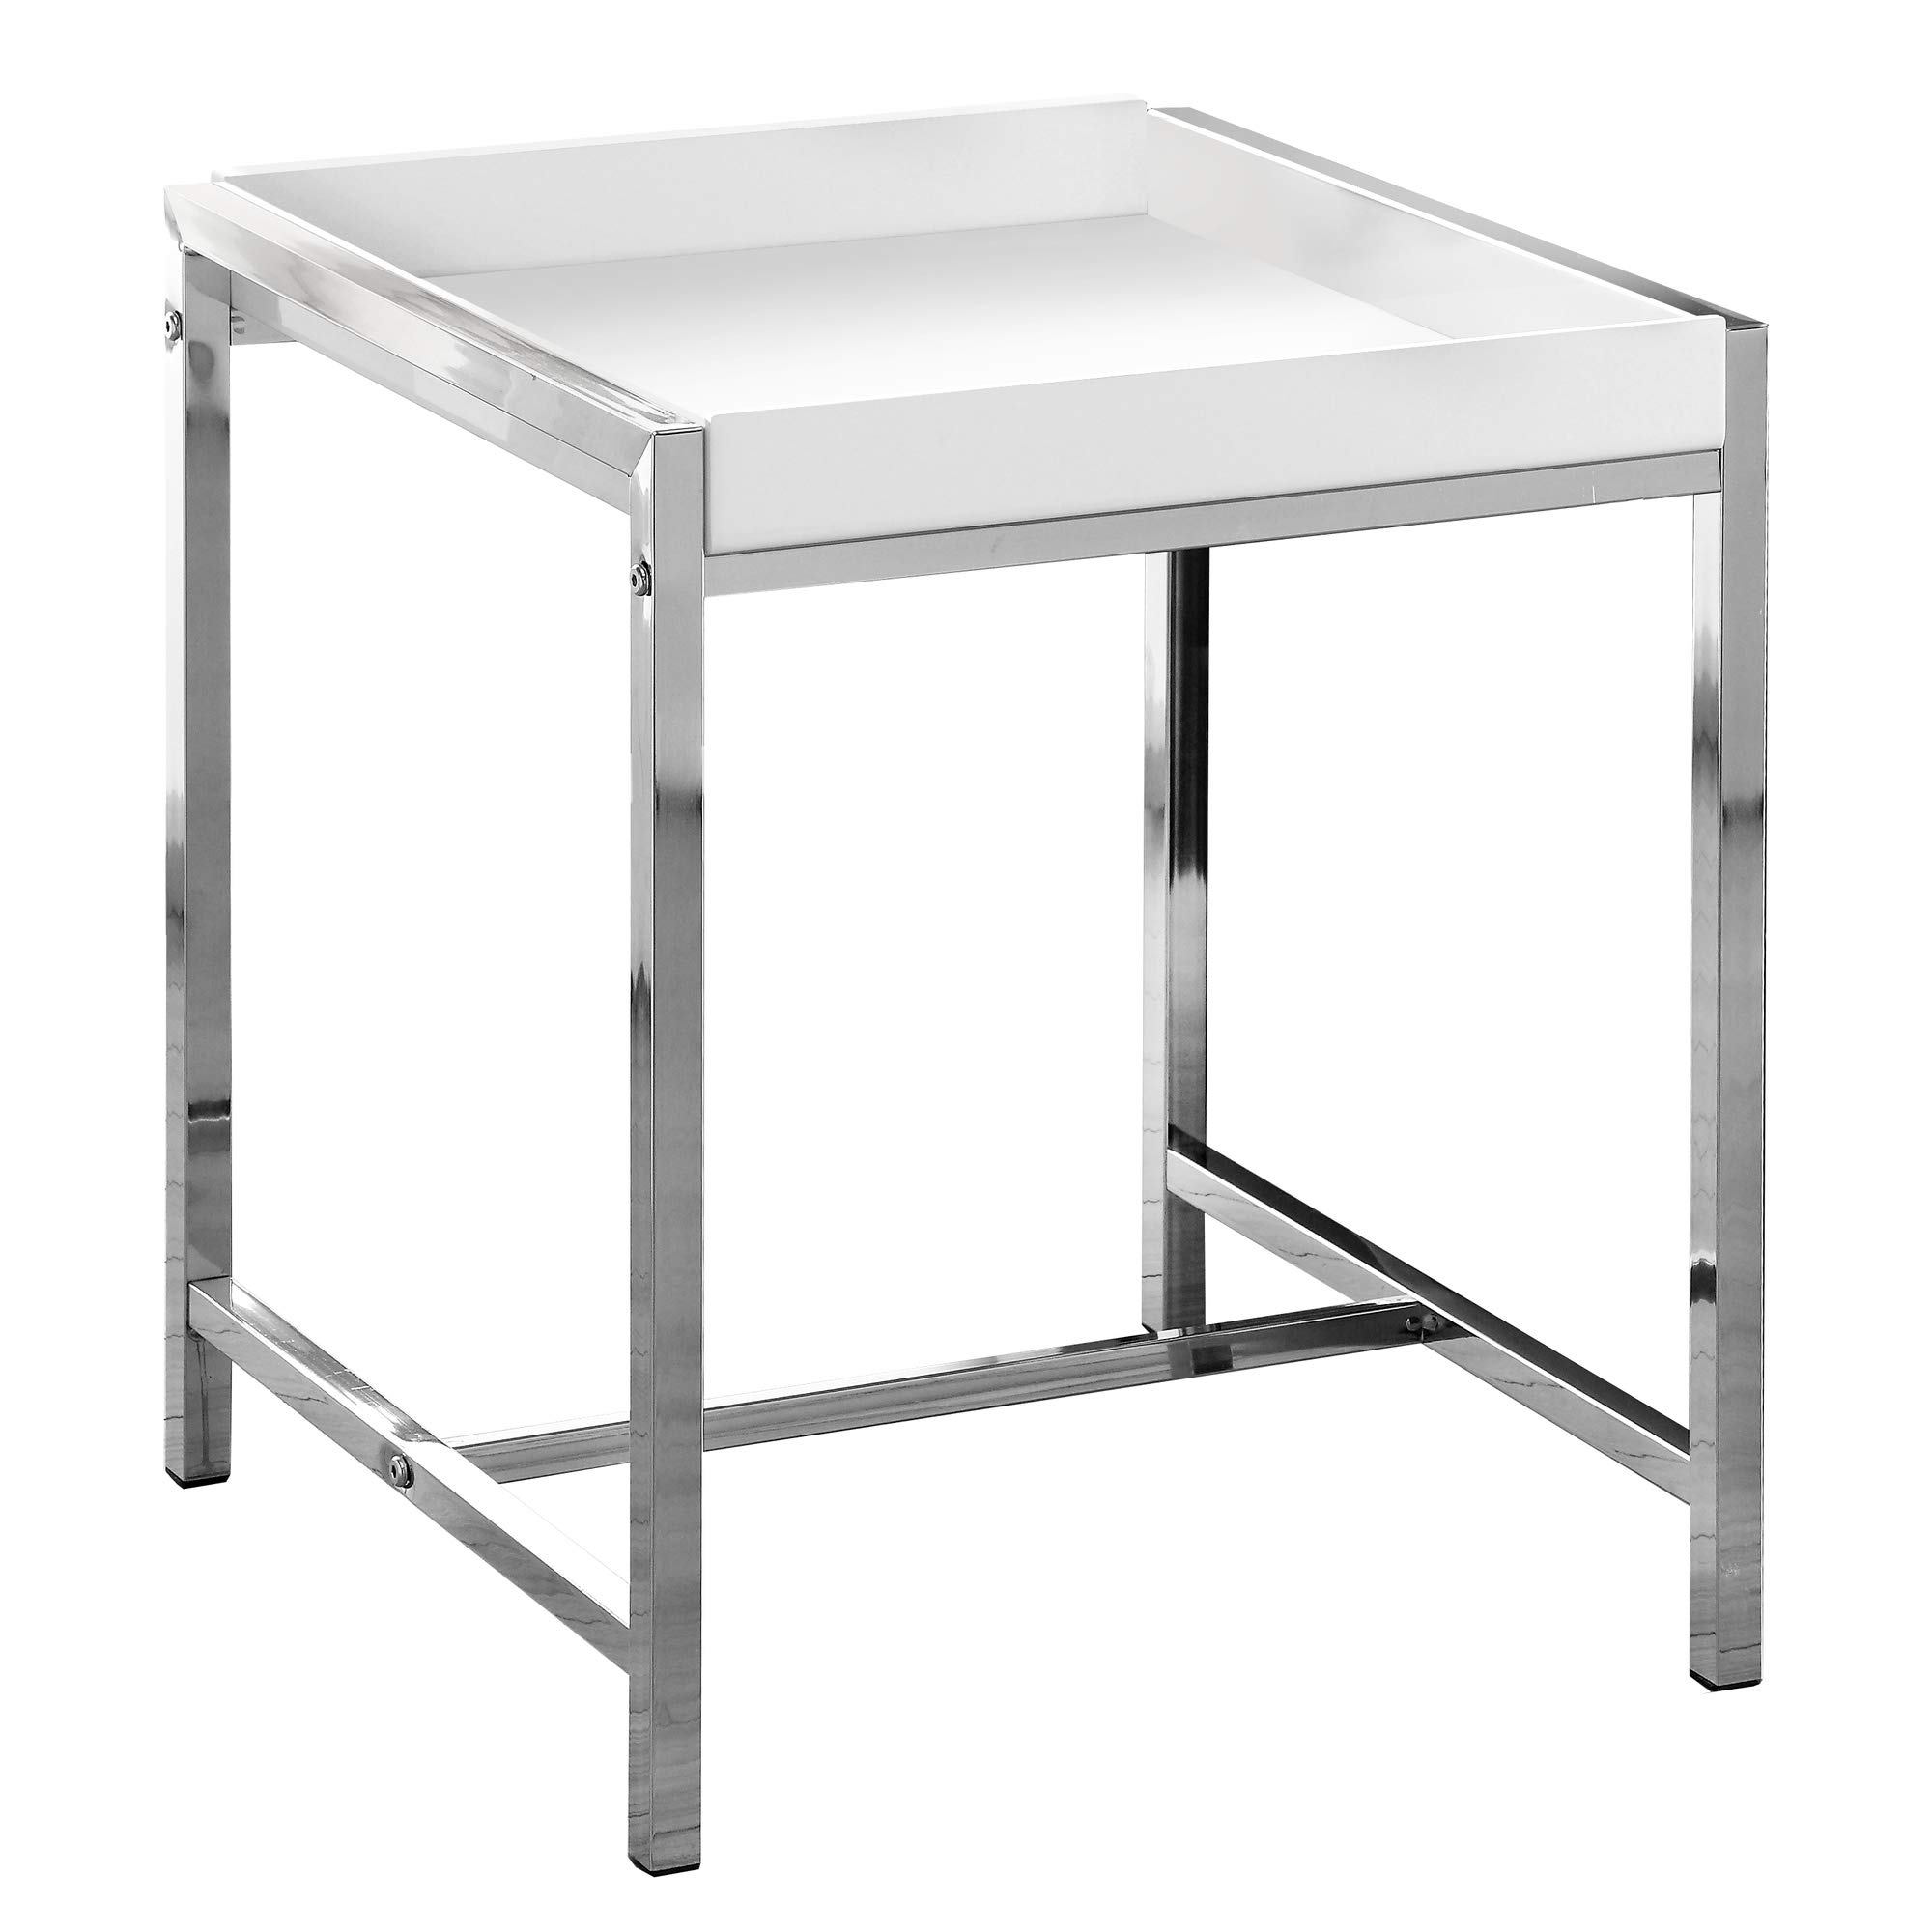 Monarch I 3050 Metal Accent Table, White Acrylic/Chrome by Monarch Specialties (Image #4)